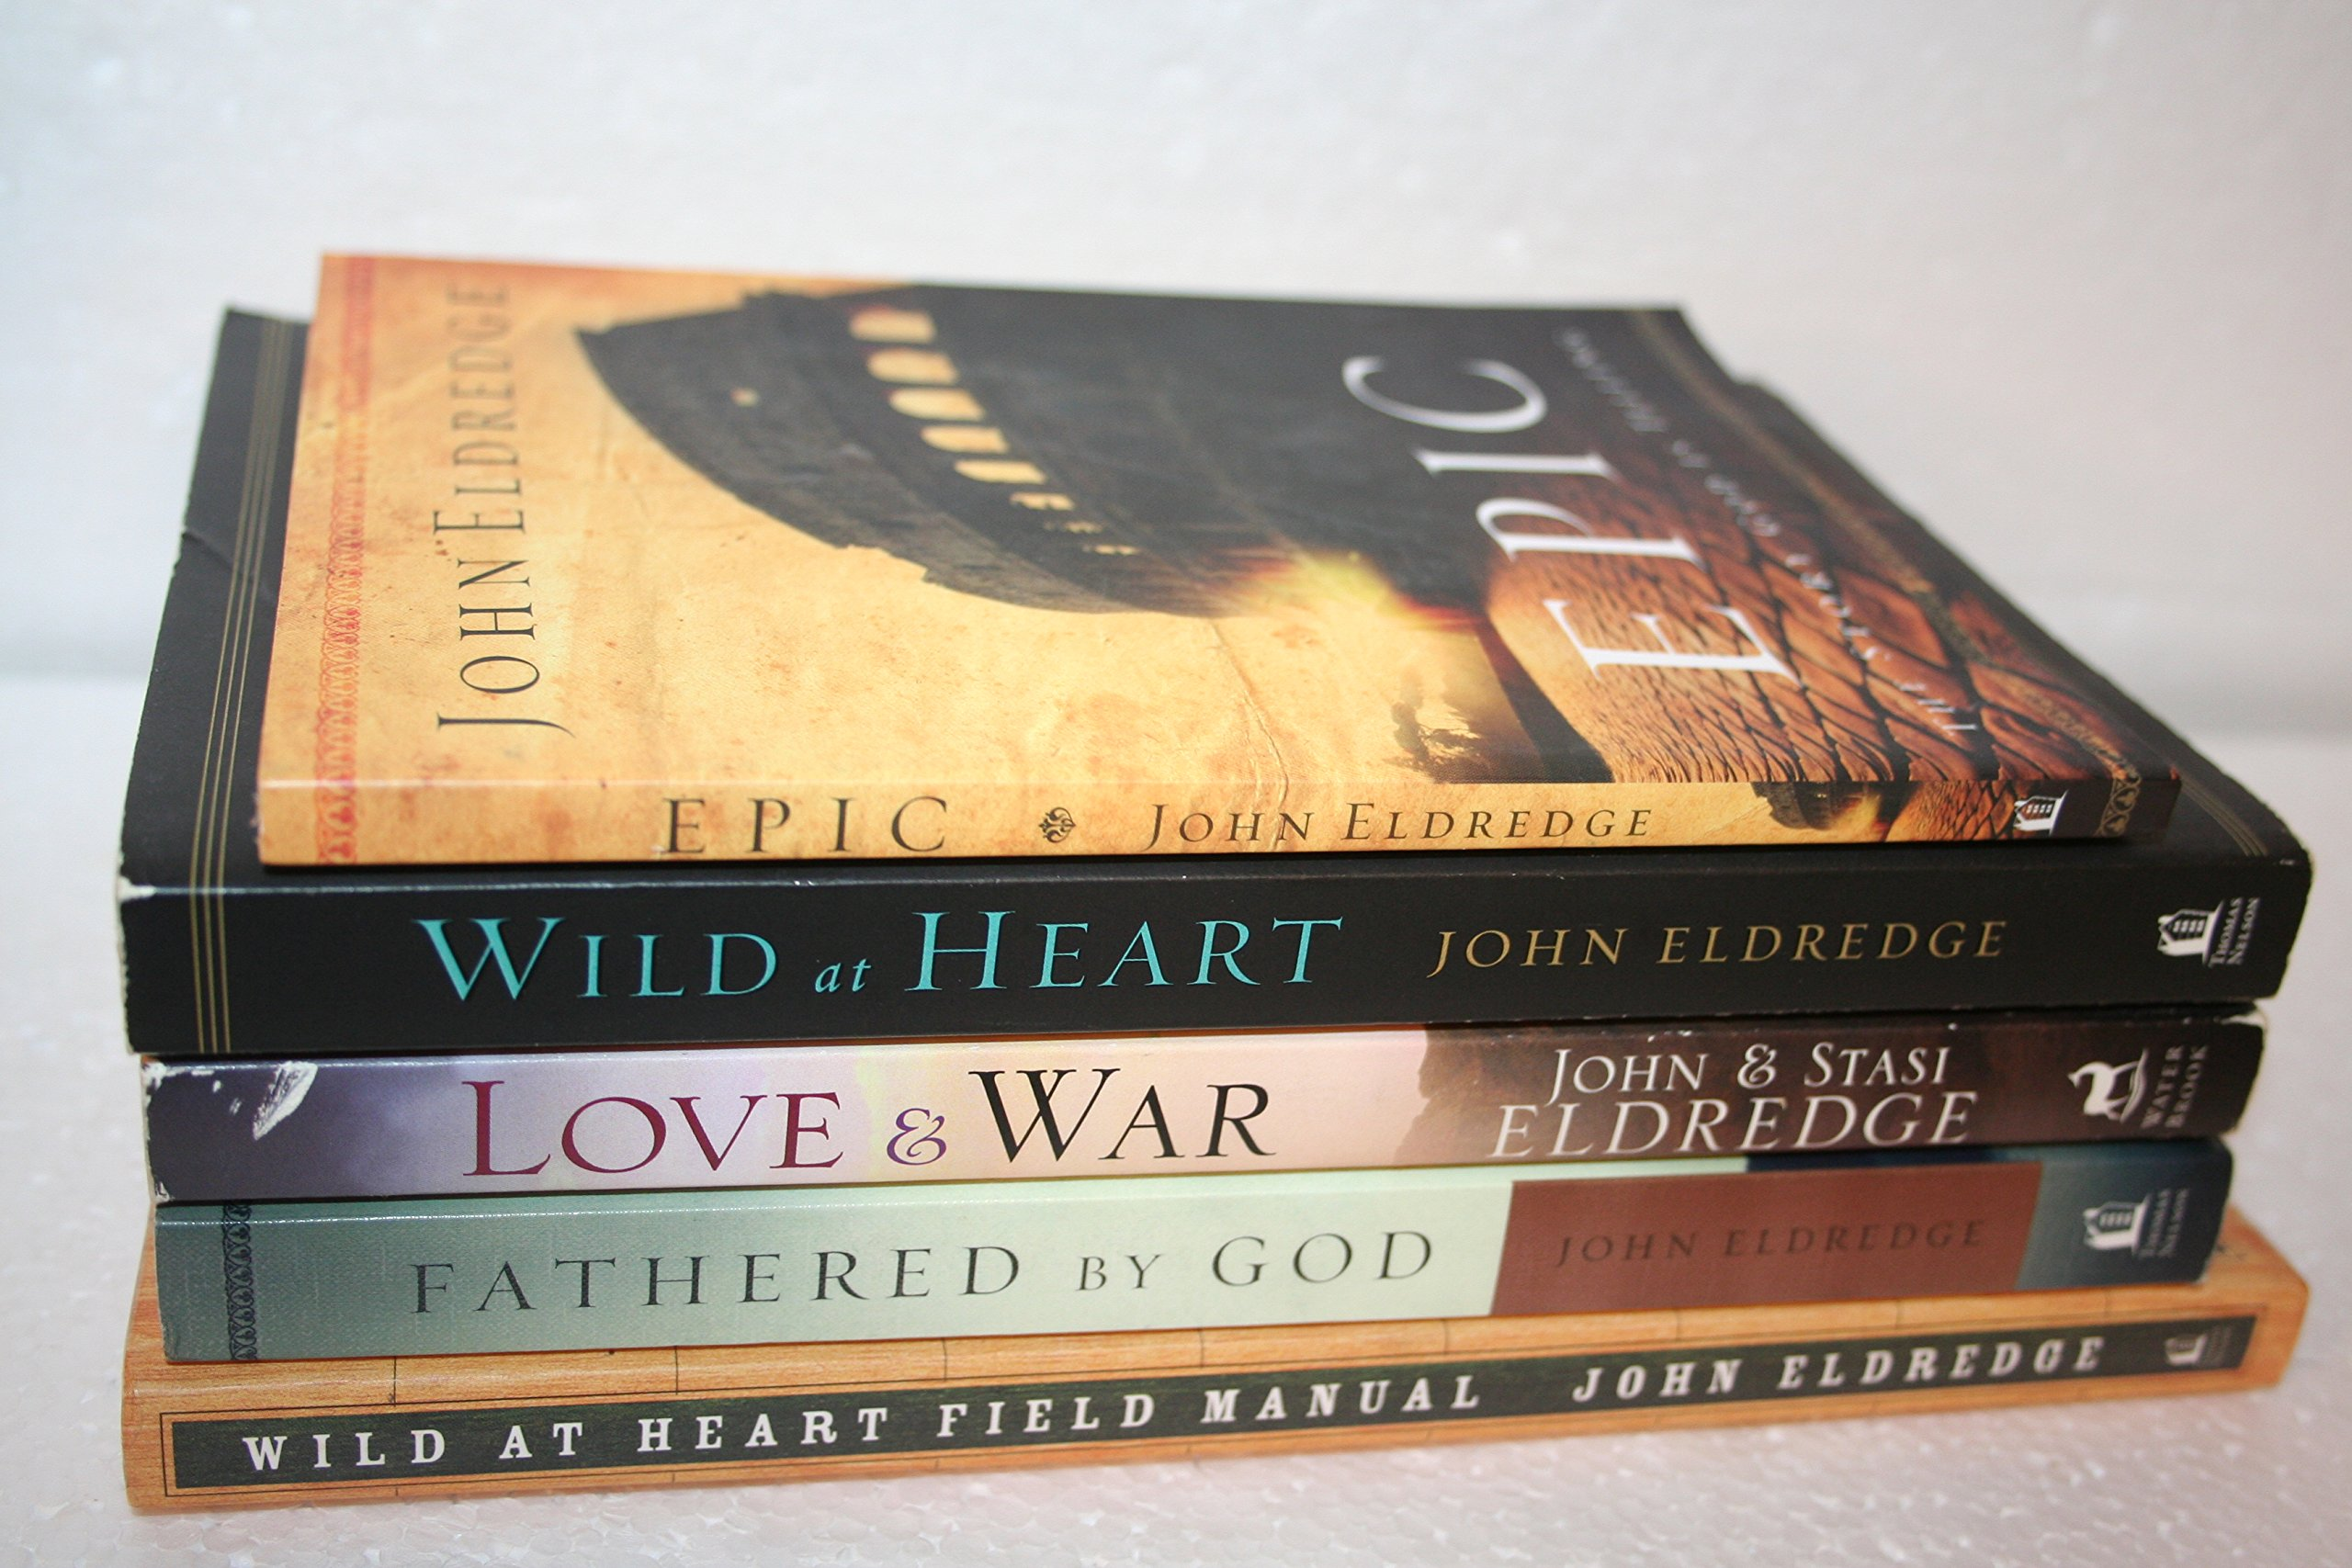 Collection of 5 John Eldredge Books {Epic, Wild at Heart, Love & War,  Fathered by God & Wild at Heart Field Manual}: John Eldredge: Amazon.com:  Books